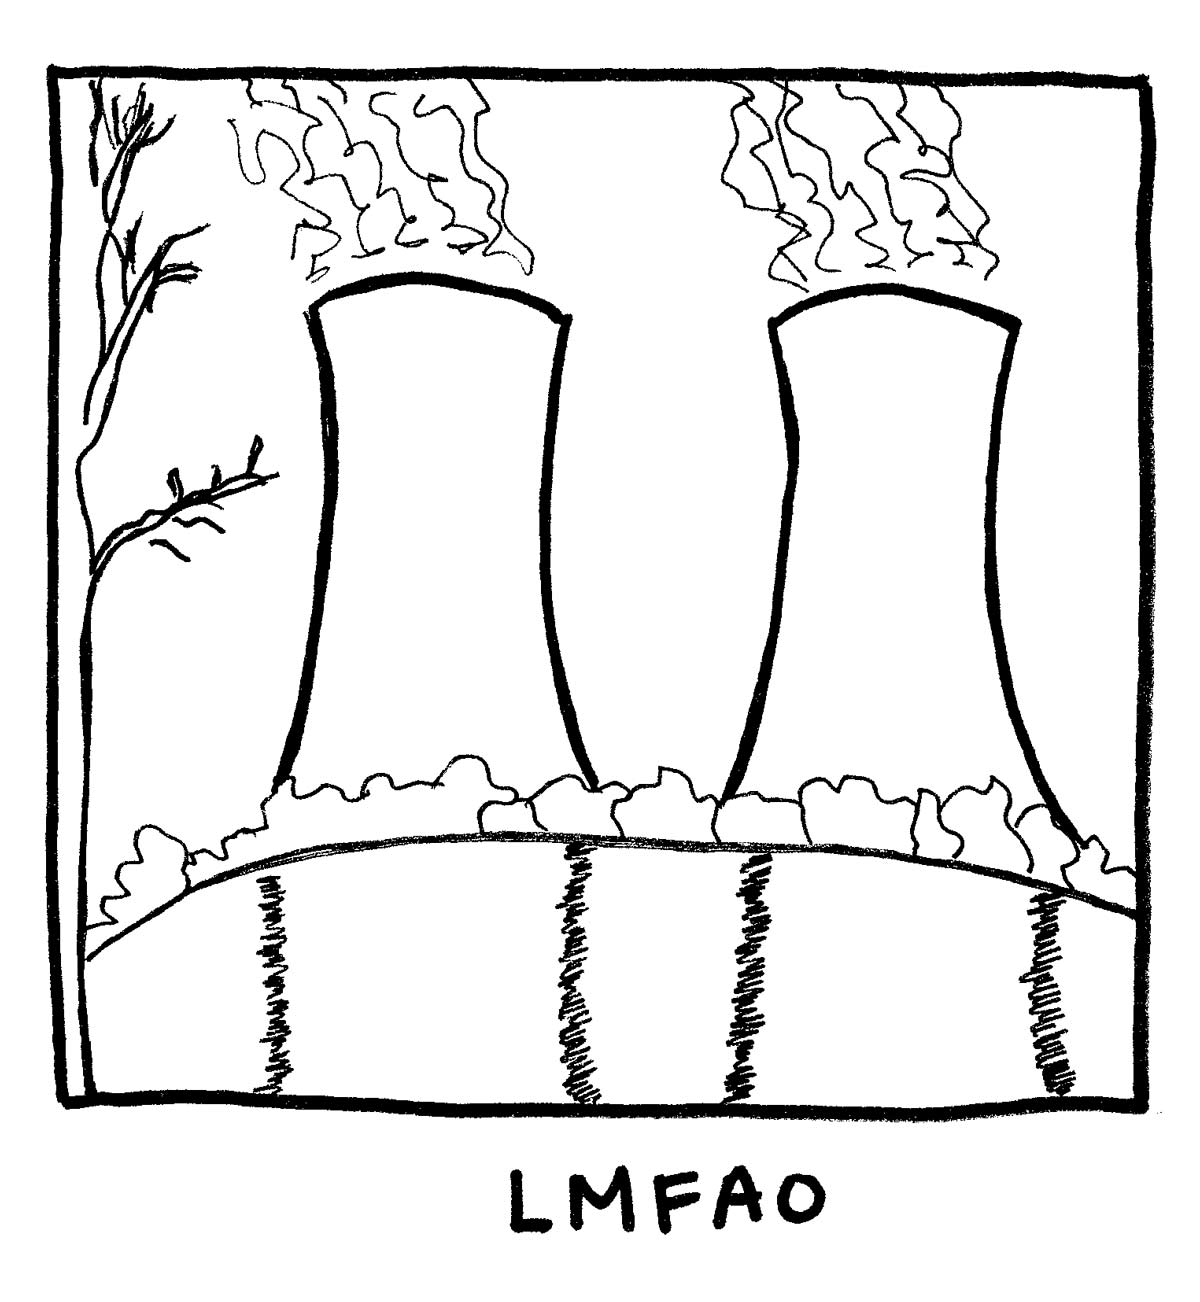 image of nuclear power plant. Labeled: LMFAO